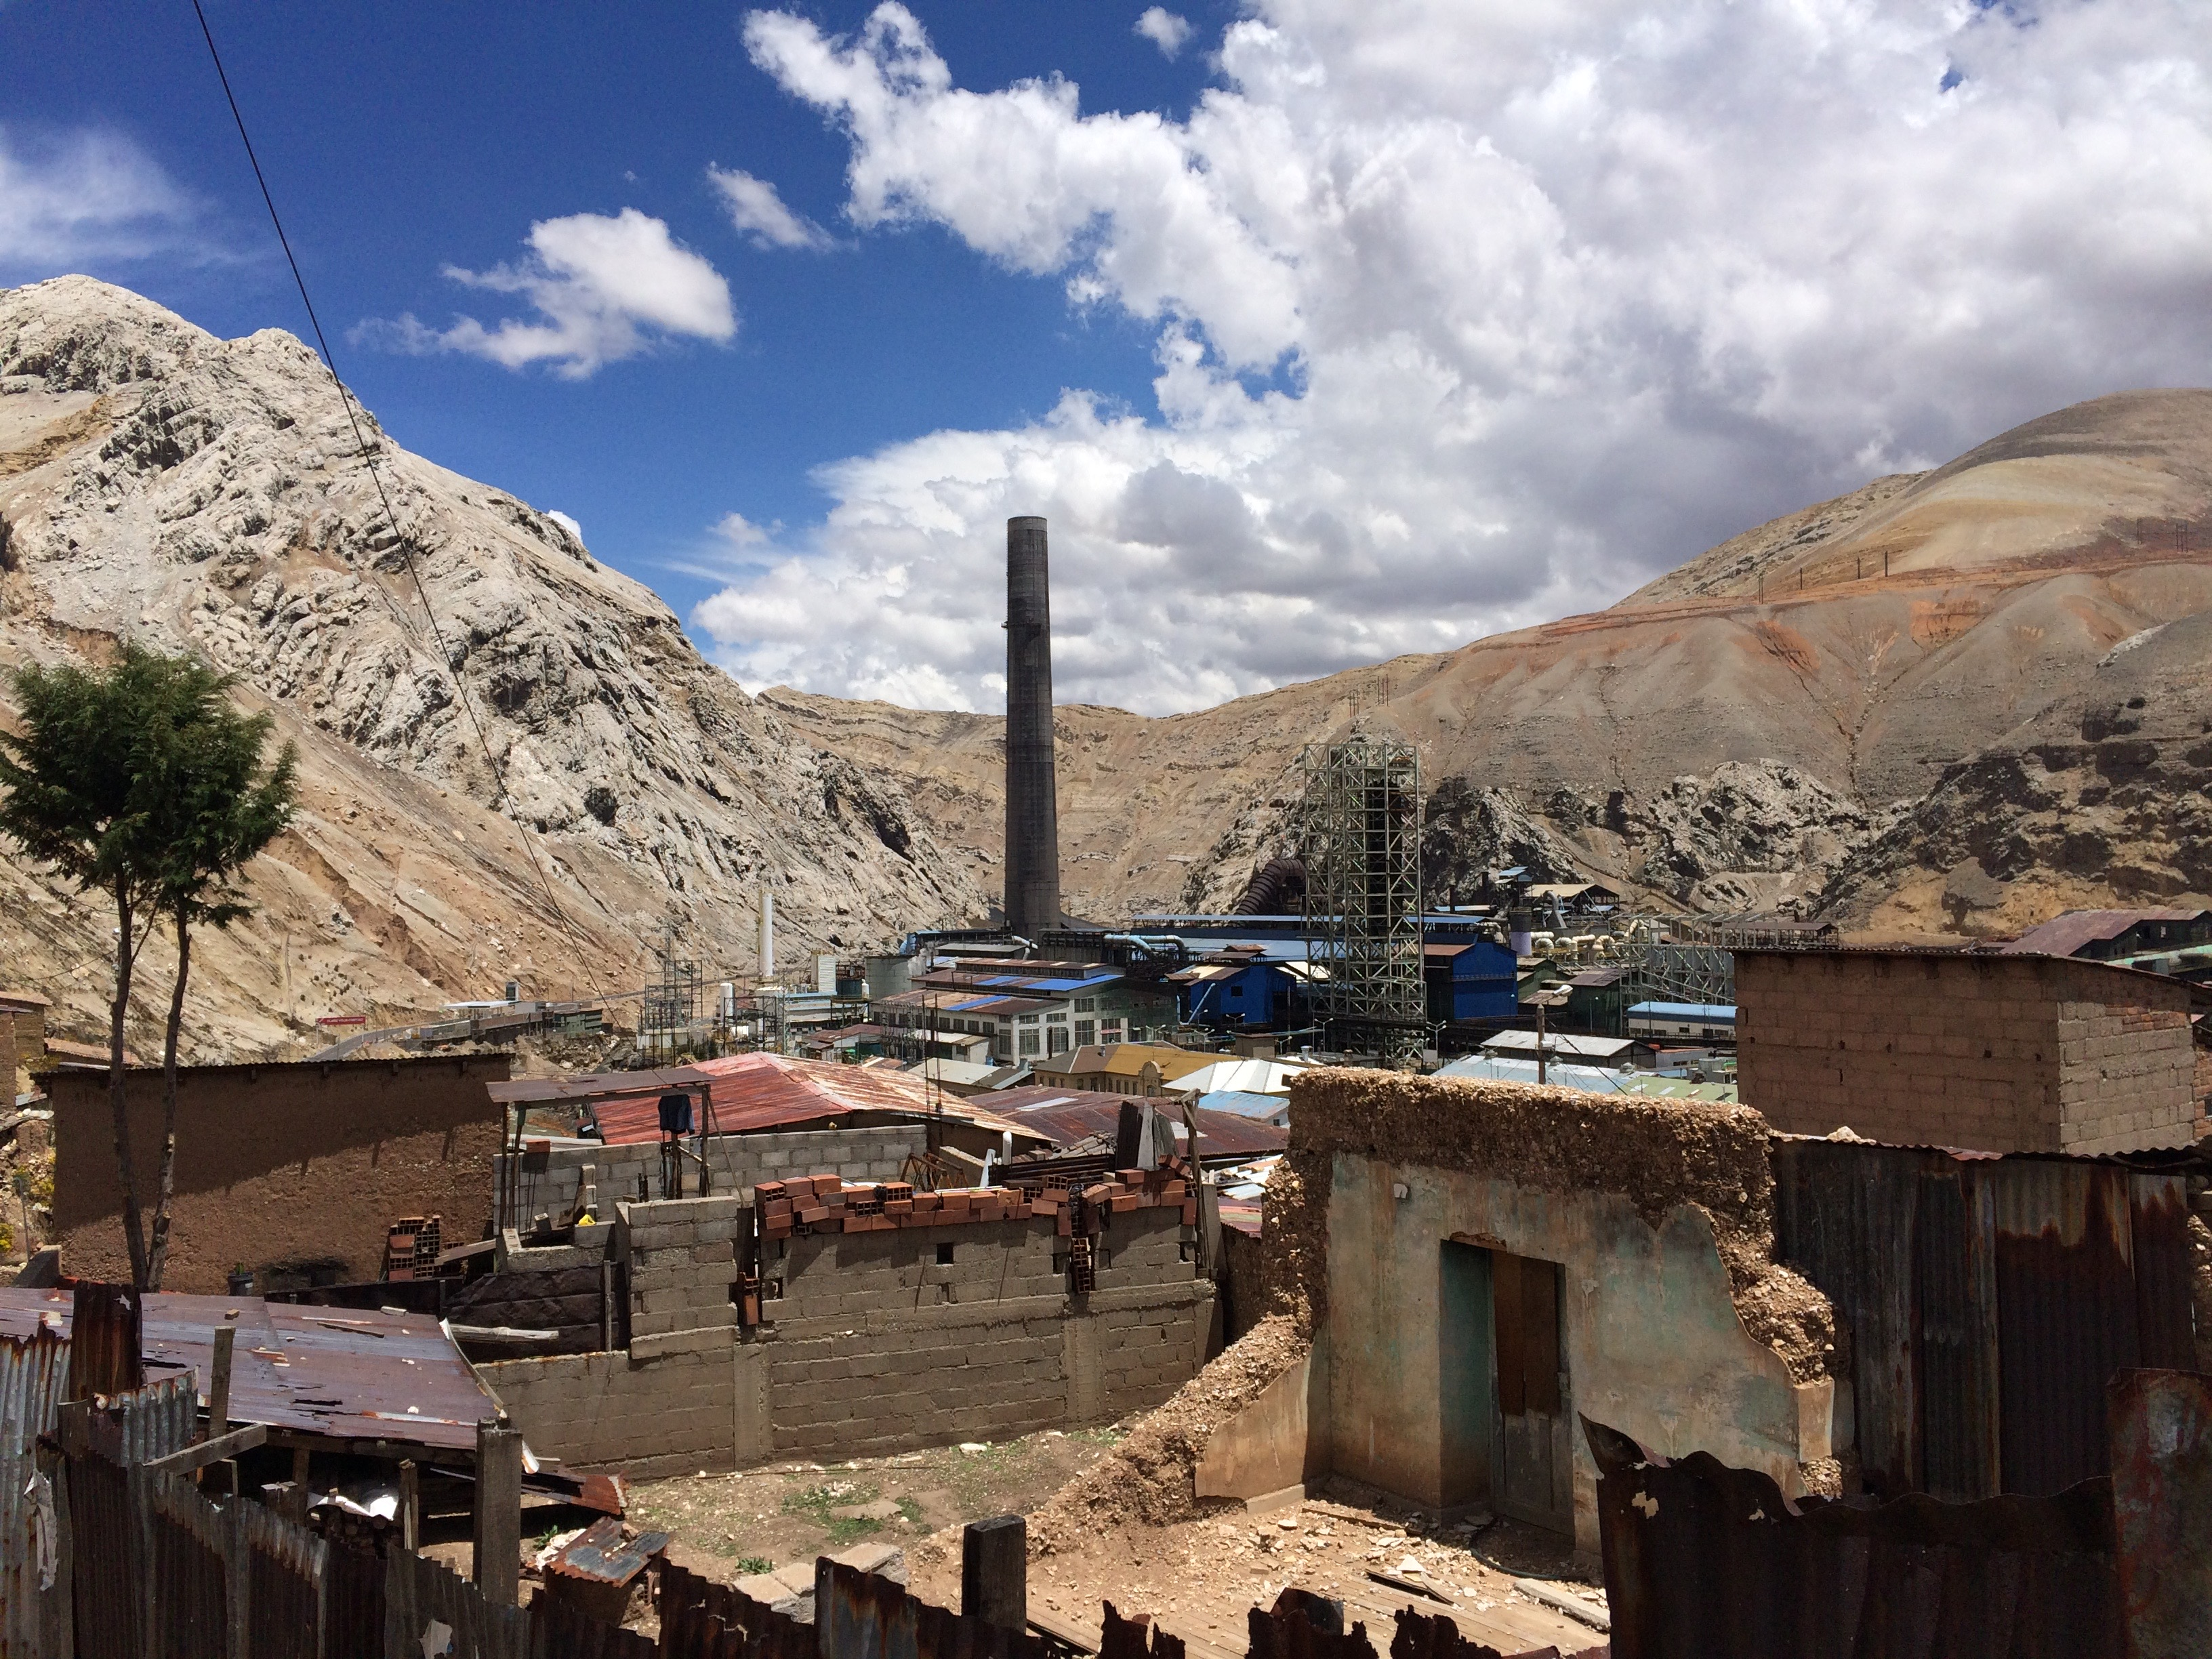 La Oroya, Peru, is considered to be one of the 10 most contaminated cities in the world due to a metallurgical smelter operating near the town center, leaving the vast majority of the population affected by lead, arsenic and cadmium among other toxins. (photo by Jed Koball)